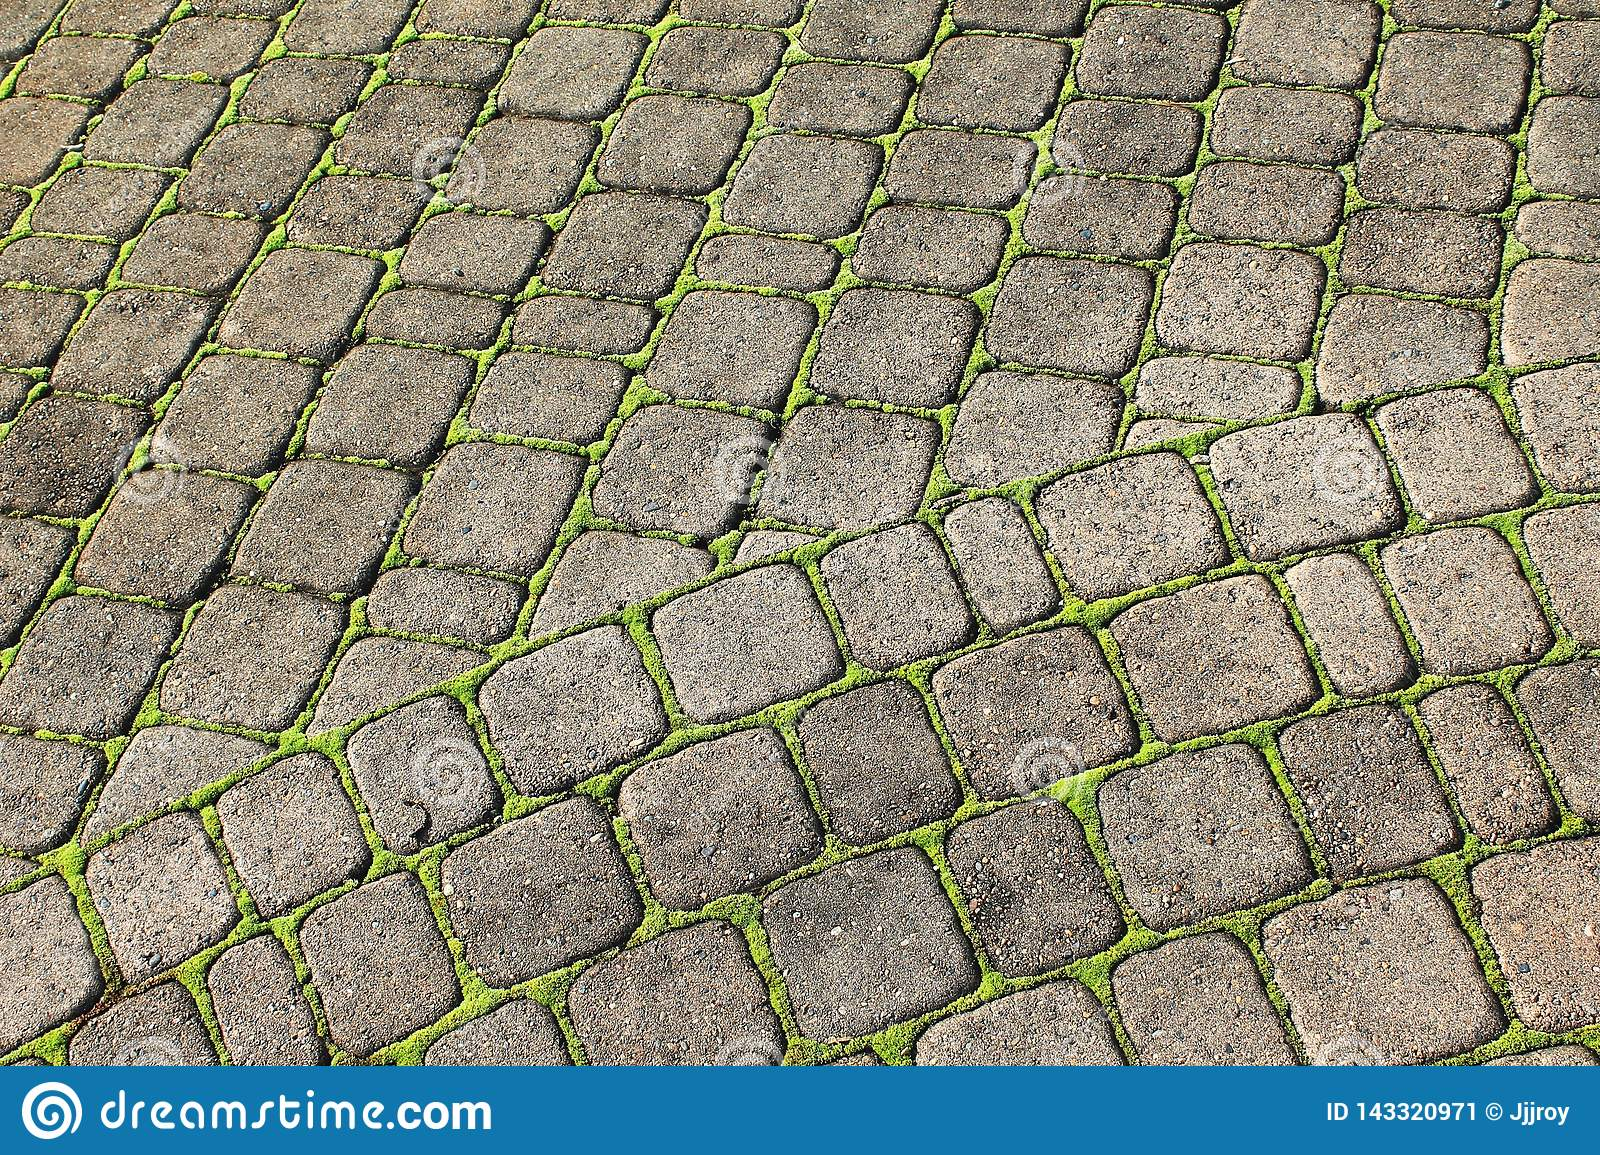 https www dreamstime com gray paving stones form intersecting grid mossy green mosaic outlines individual pavers cobblestone patio image143320971